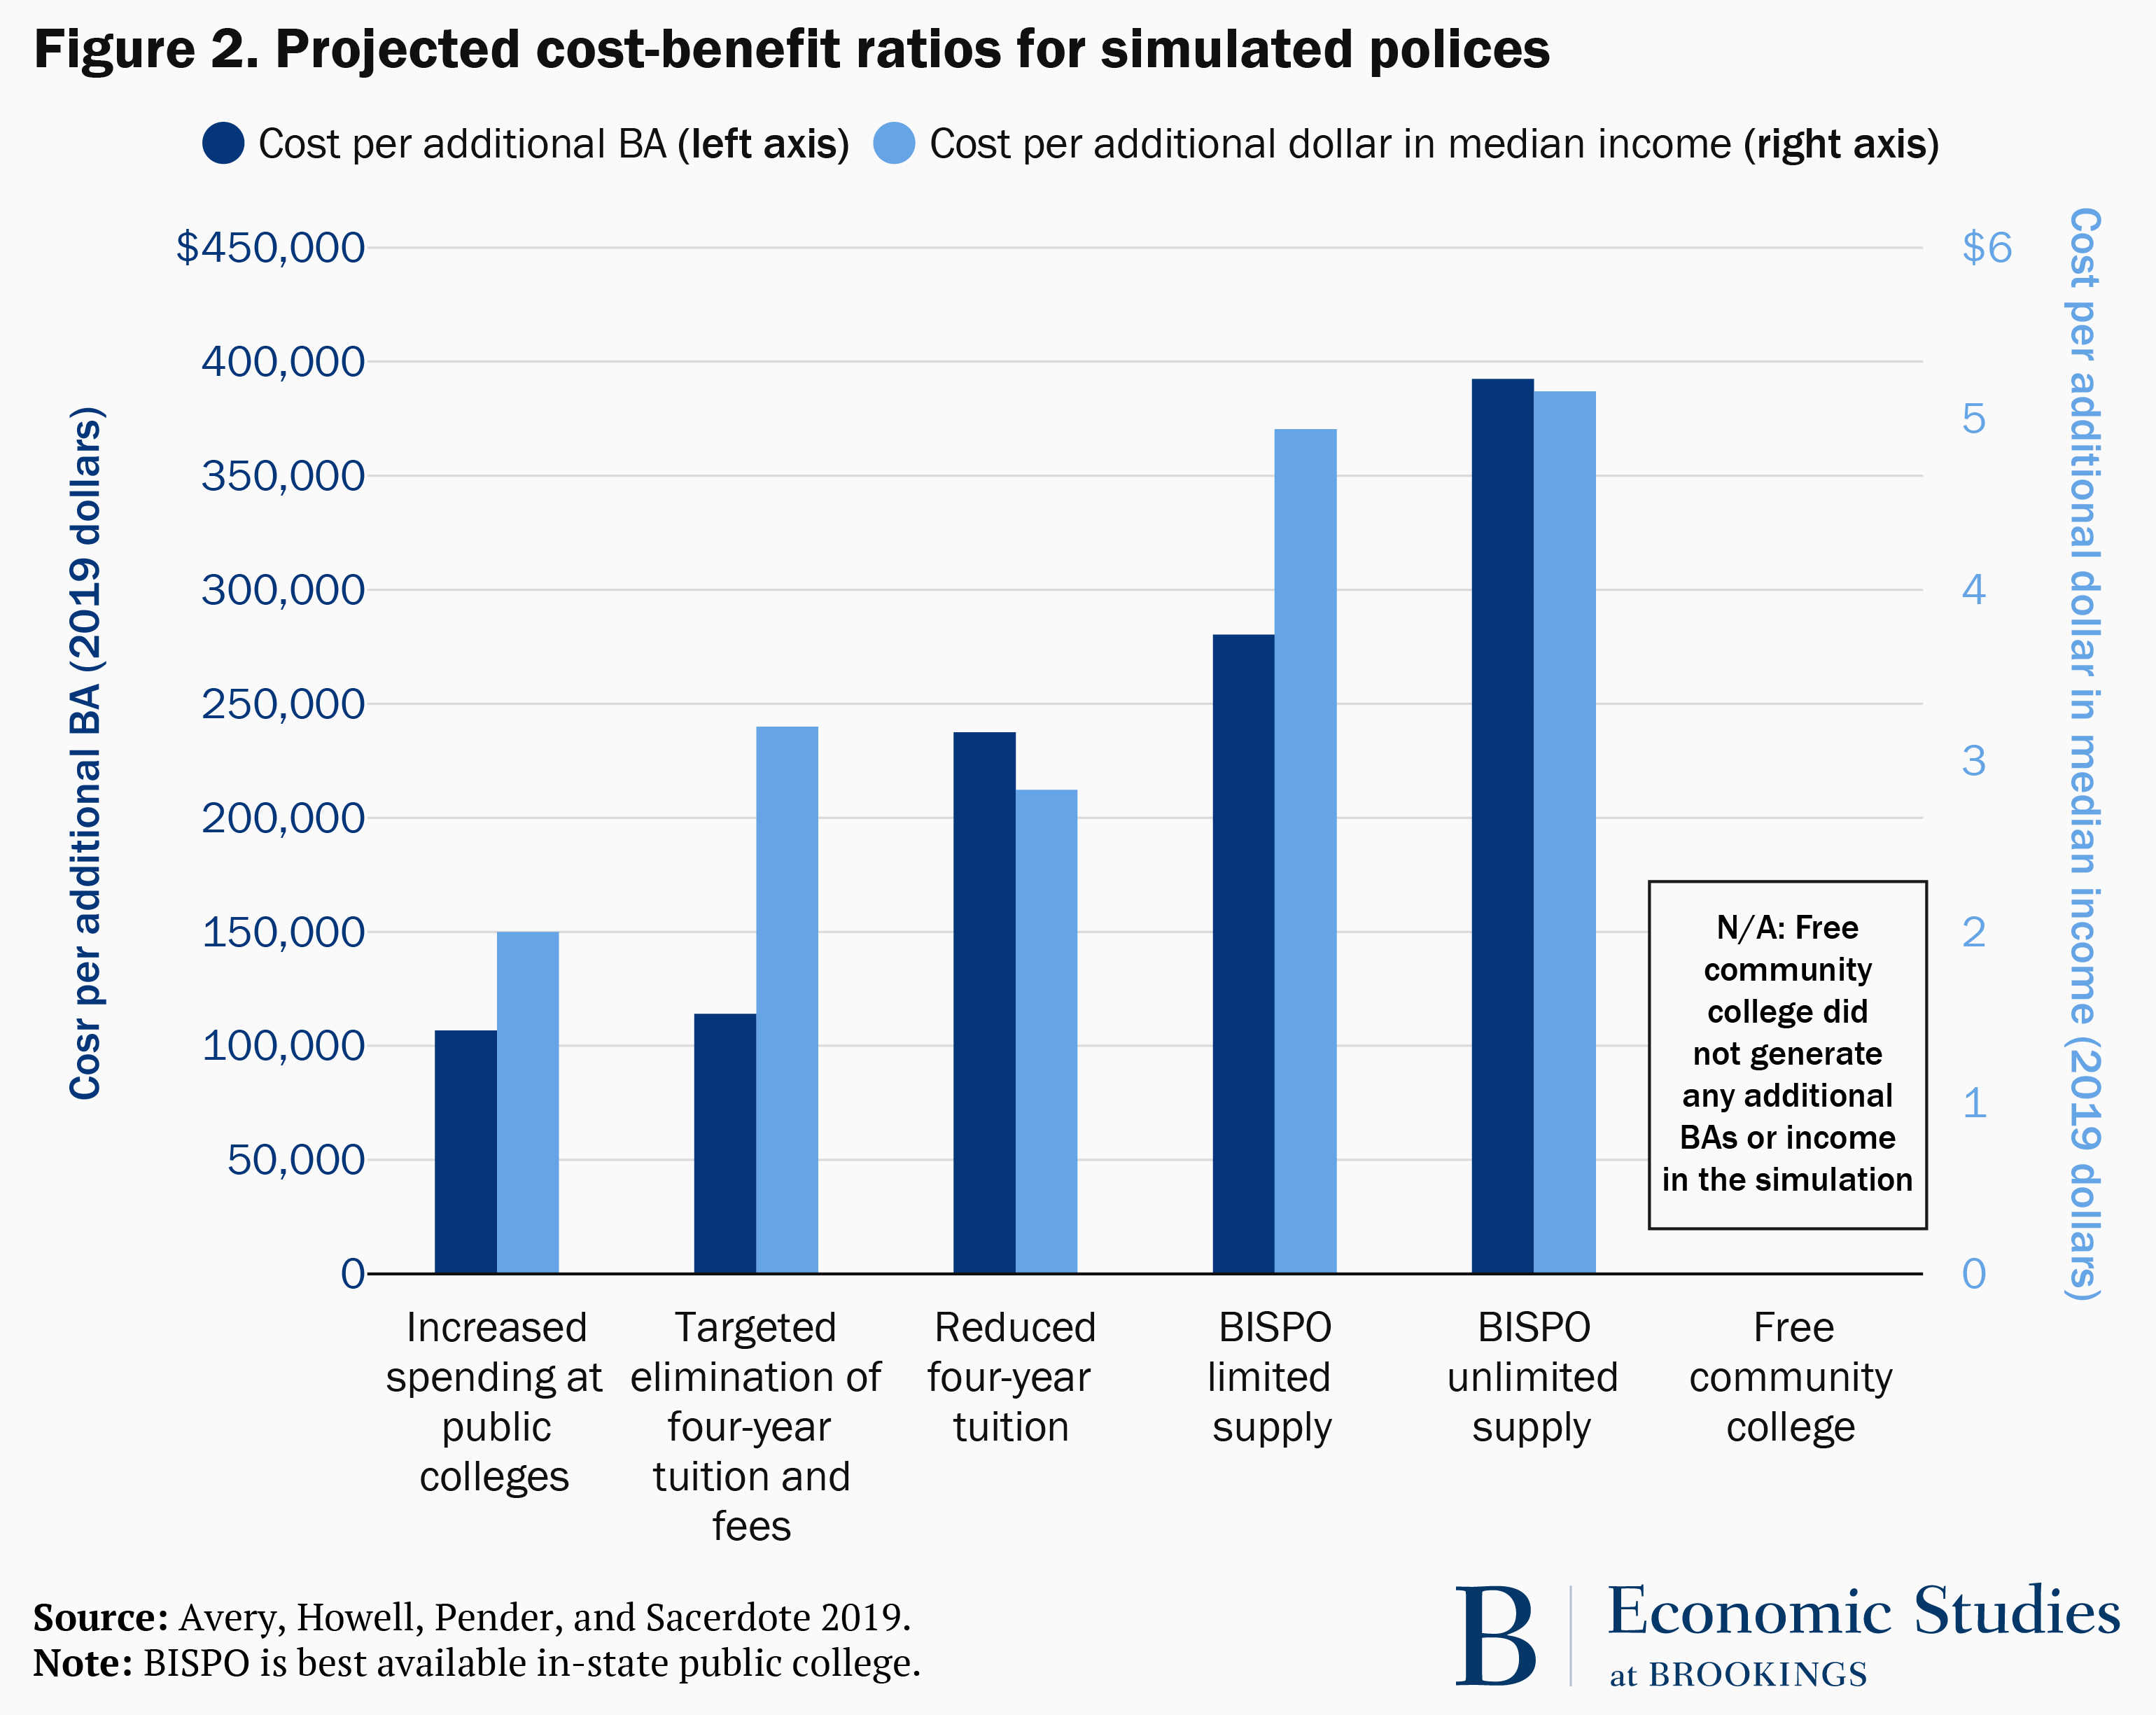 Figure 2. Projected cost-benefit ratios for simulated policies